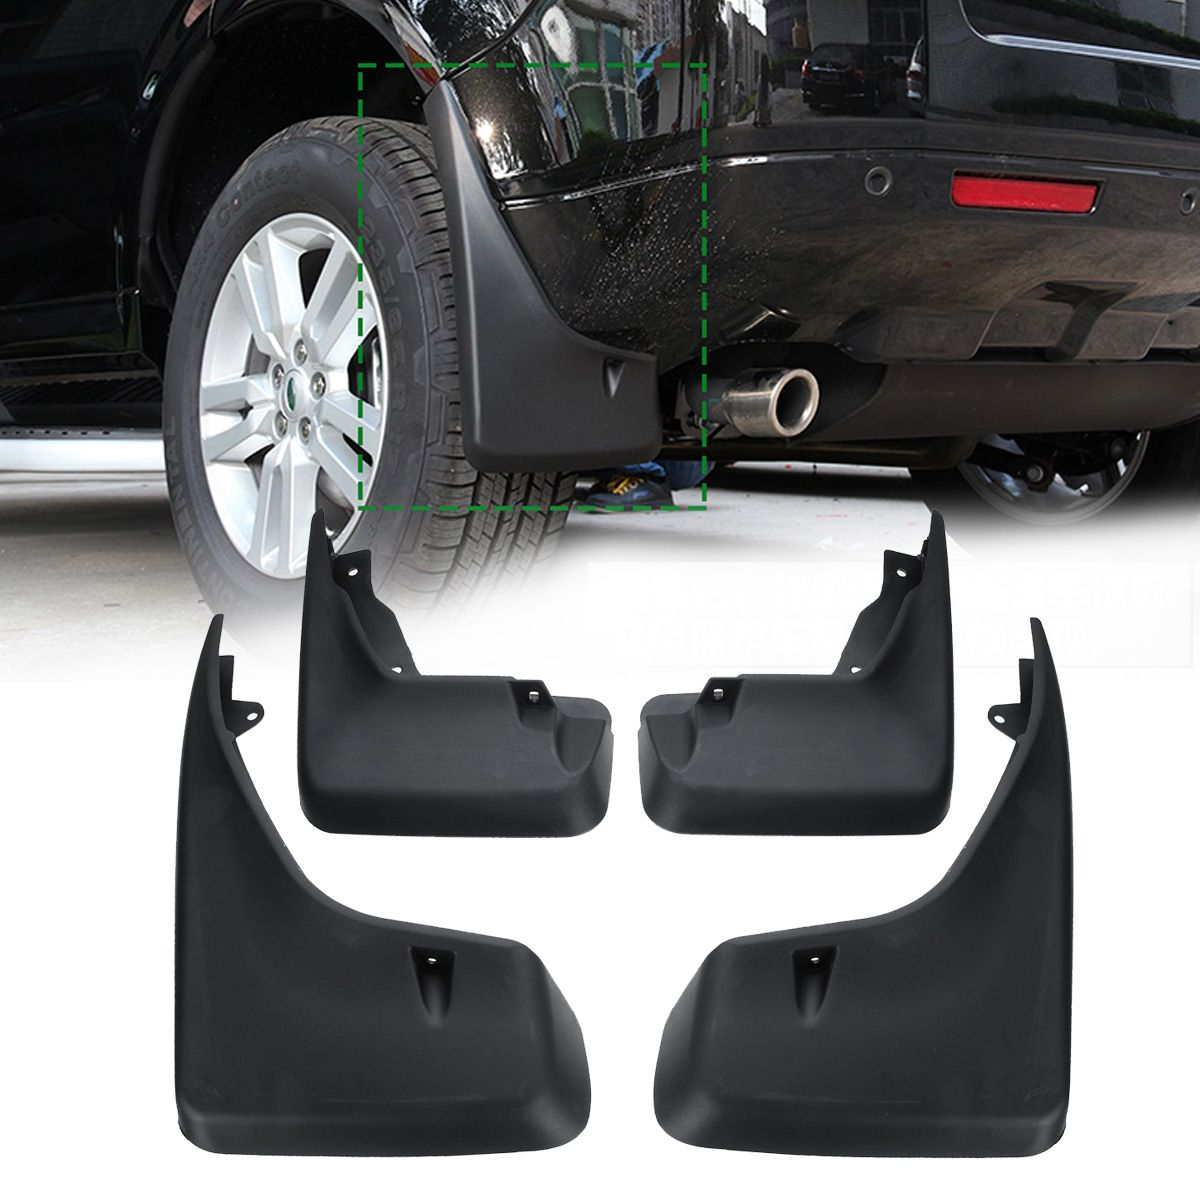 Mudflap-Guard-Set Freelander Front for Black Rear 4pcs LR003322 title=